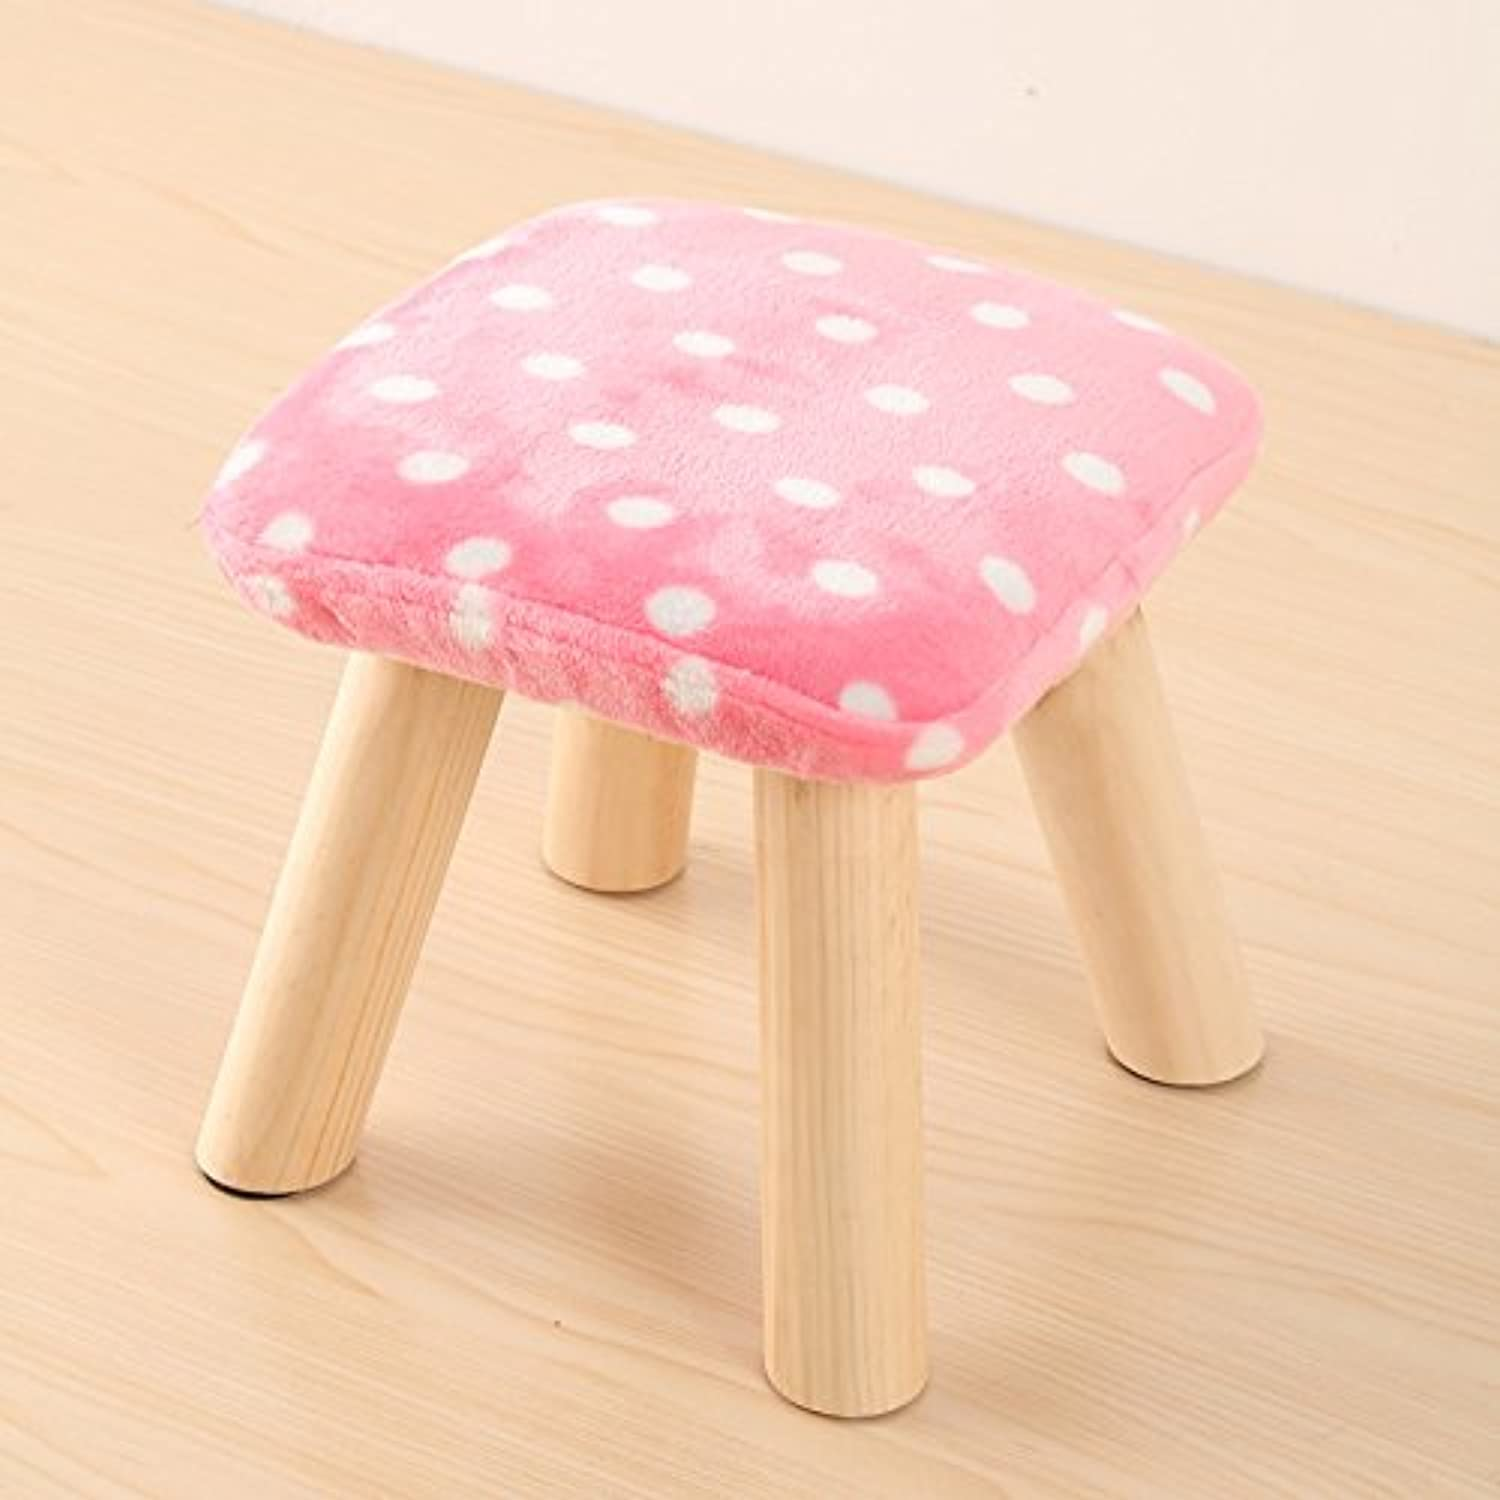 Solid Wood shoes Bench Creative Sofa Stool Fabric Stool Home Stool Heightening Stool Cute Cartoon Stool Flannel Stool 0522A (color   C, Size   L)